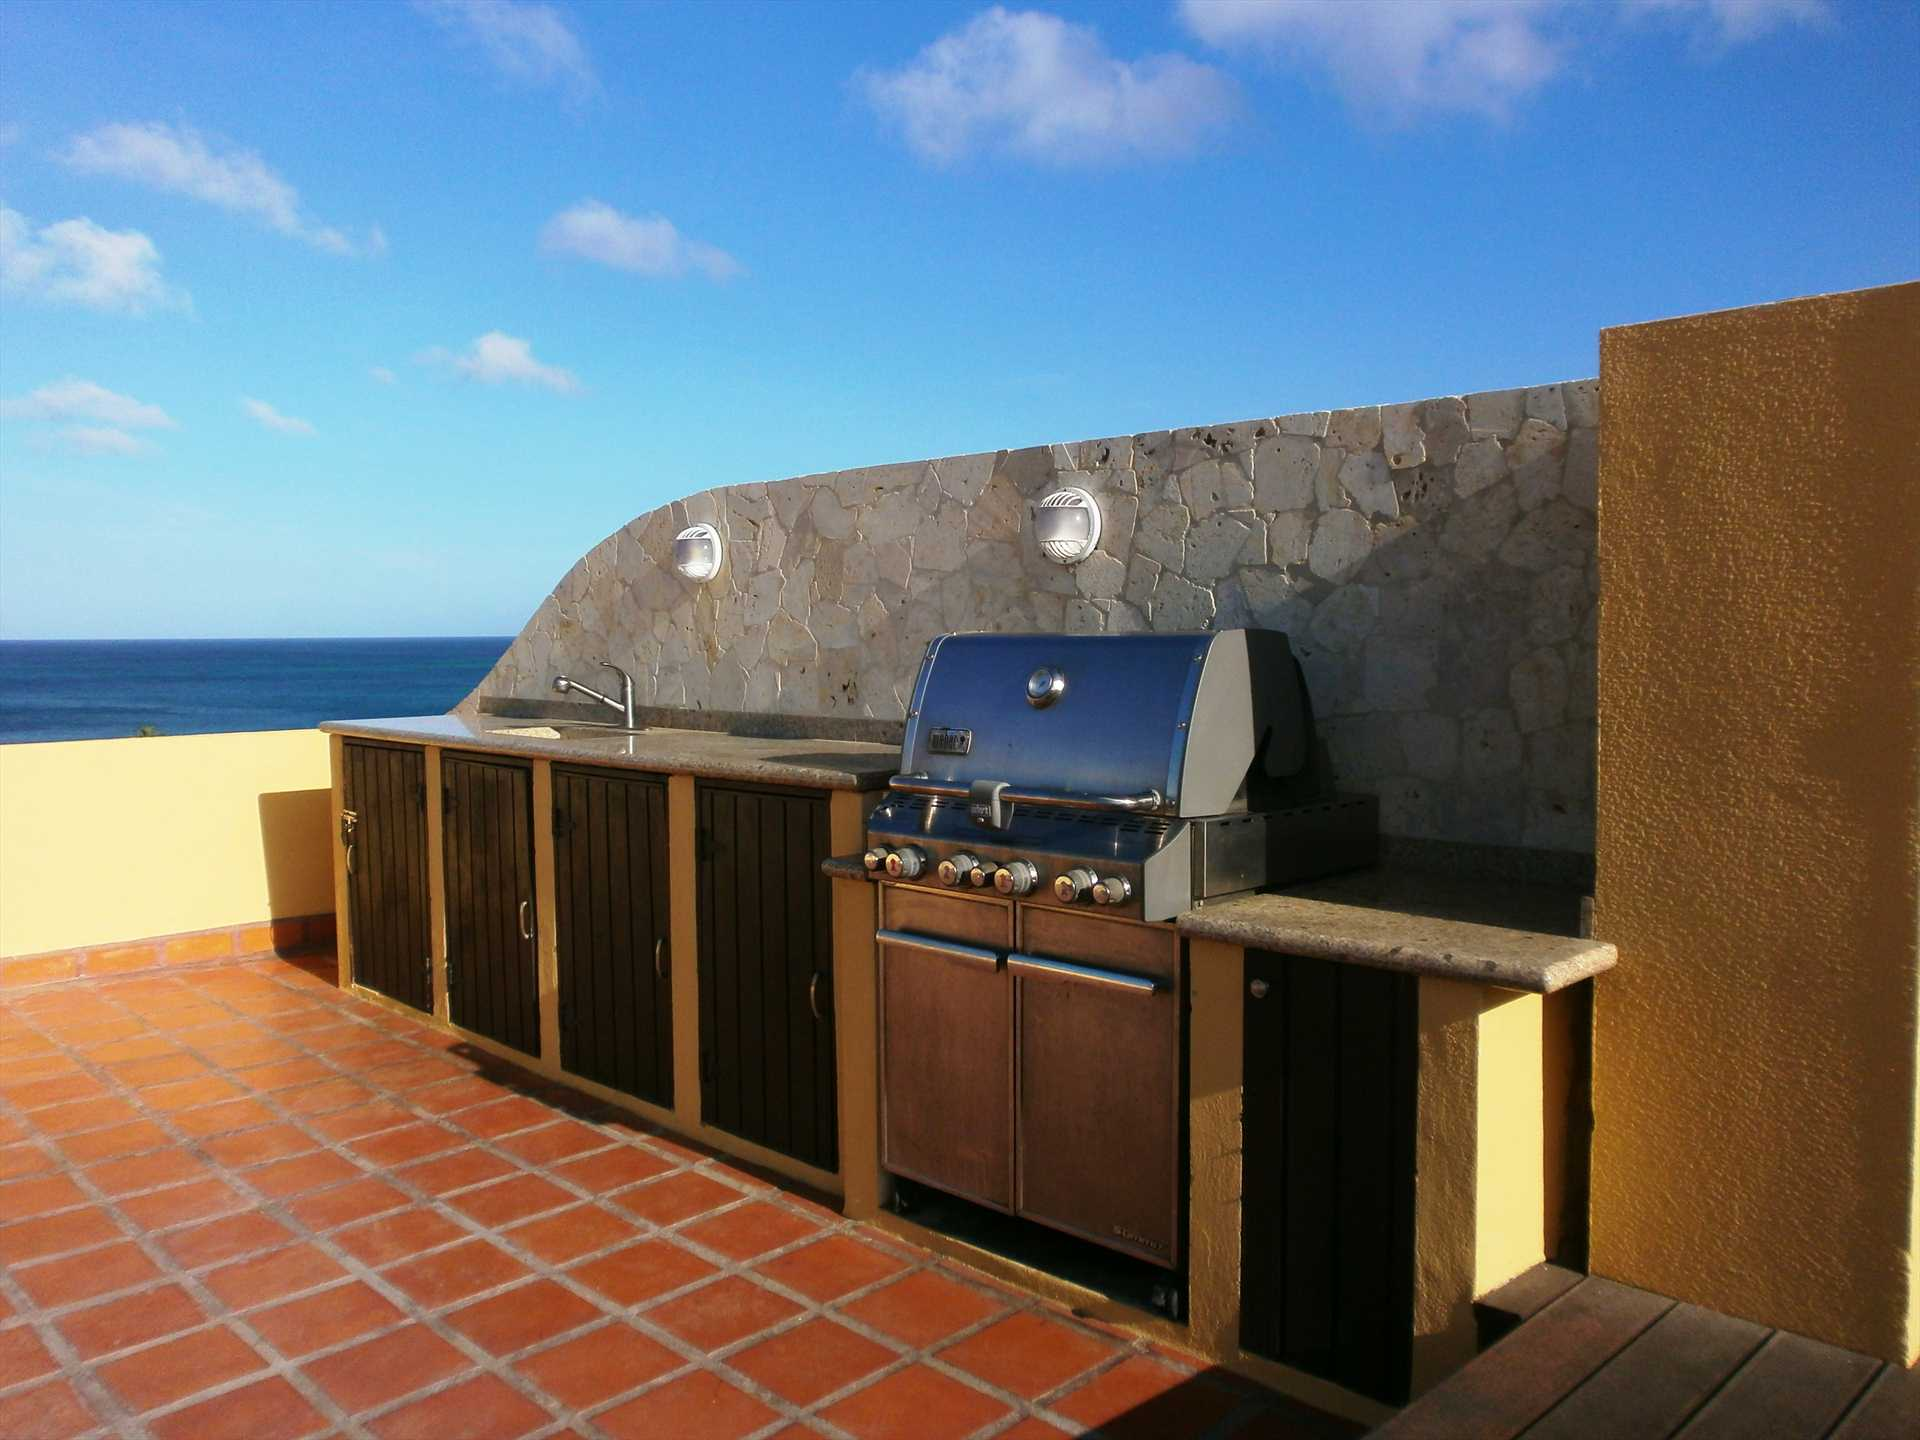 Outdoor kitchen with built-in WEBER gas BBQ grill and refrigerator!